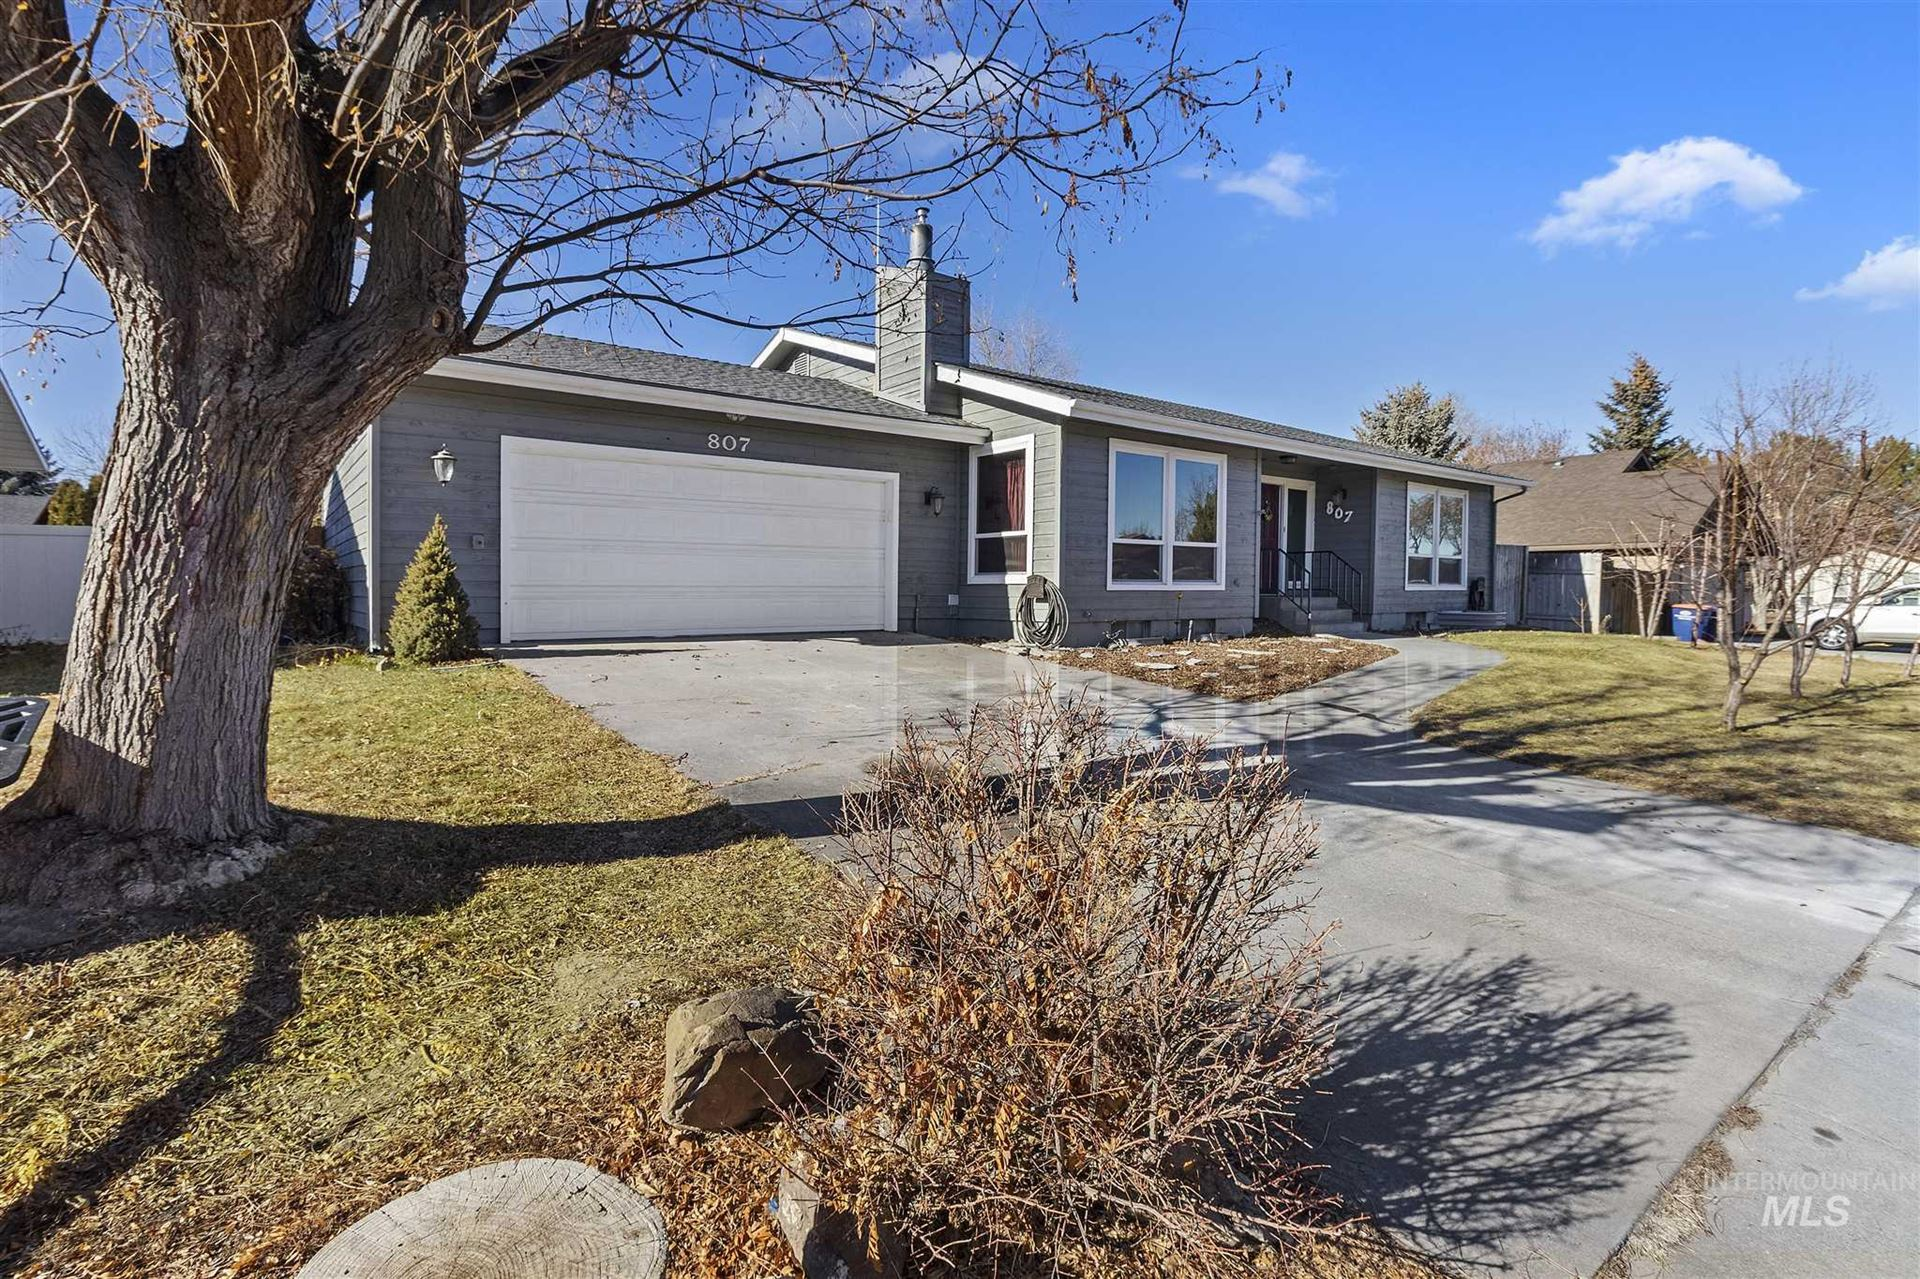 Photo of 807 Campus Dr, Twin Falls, ID 83301 (MLS # 98791451)